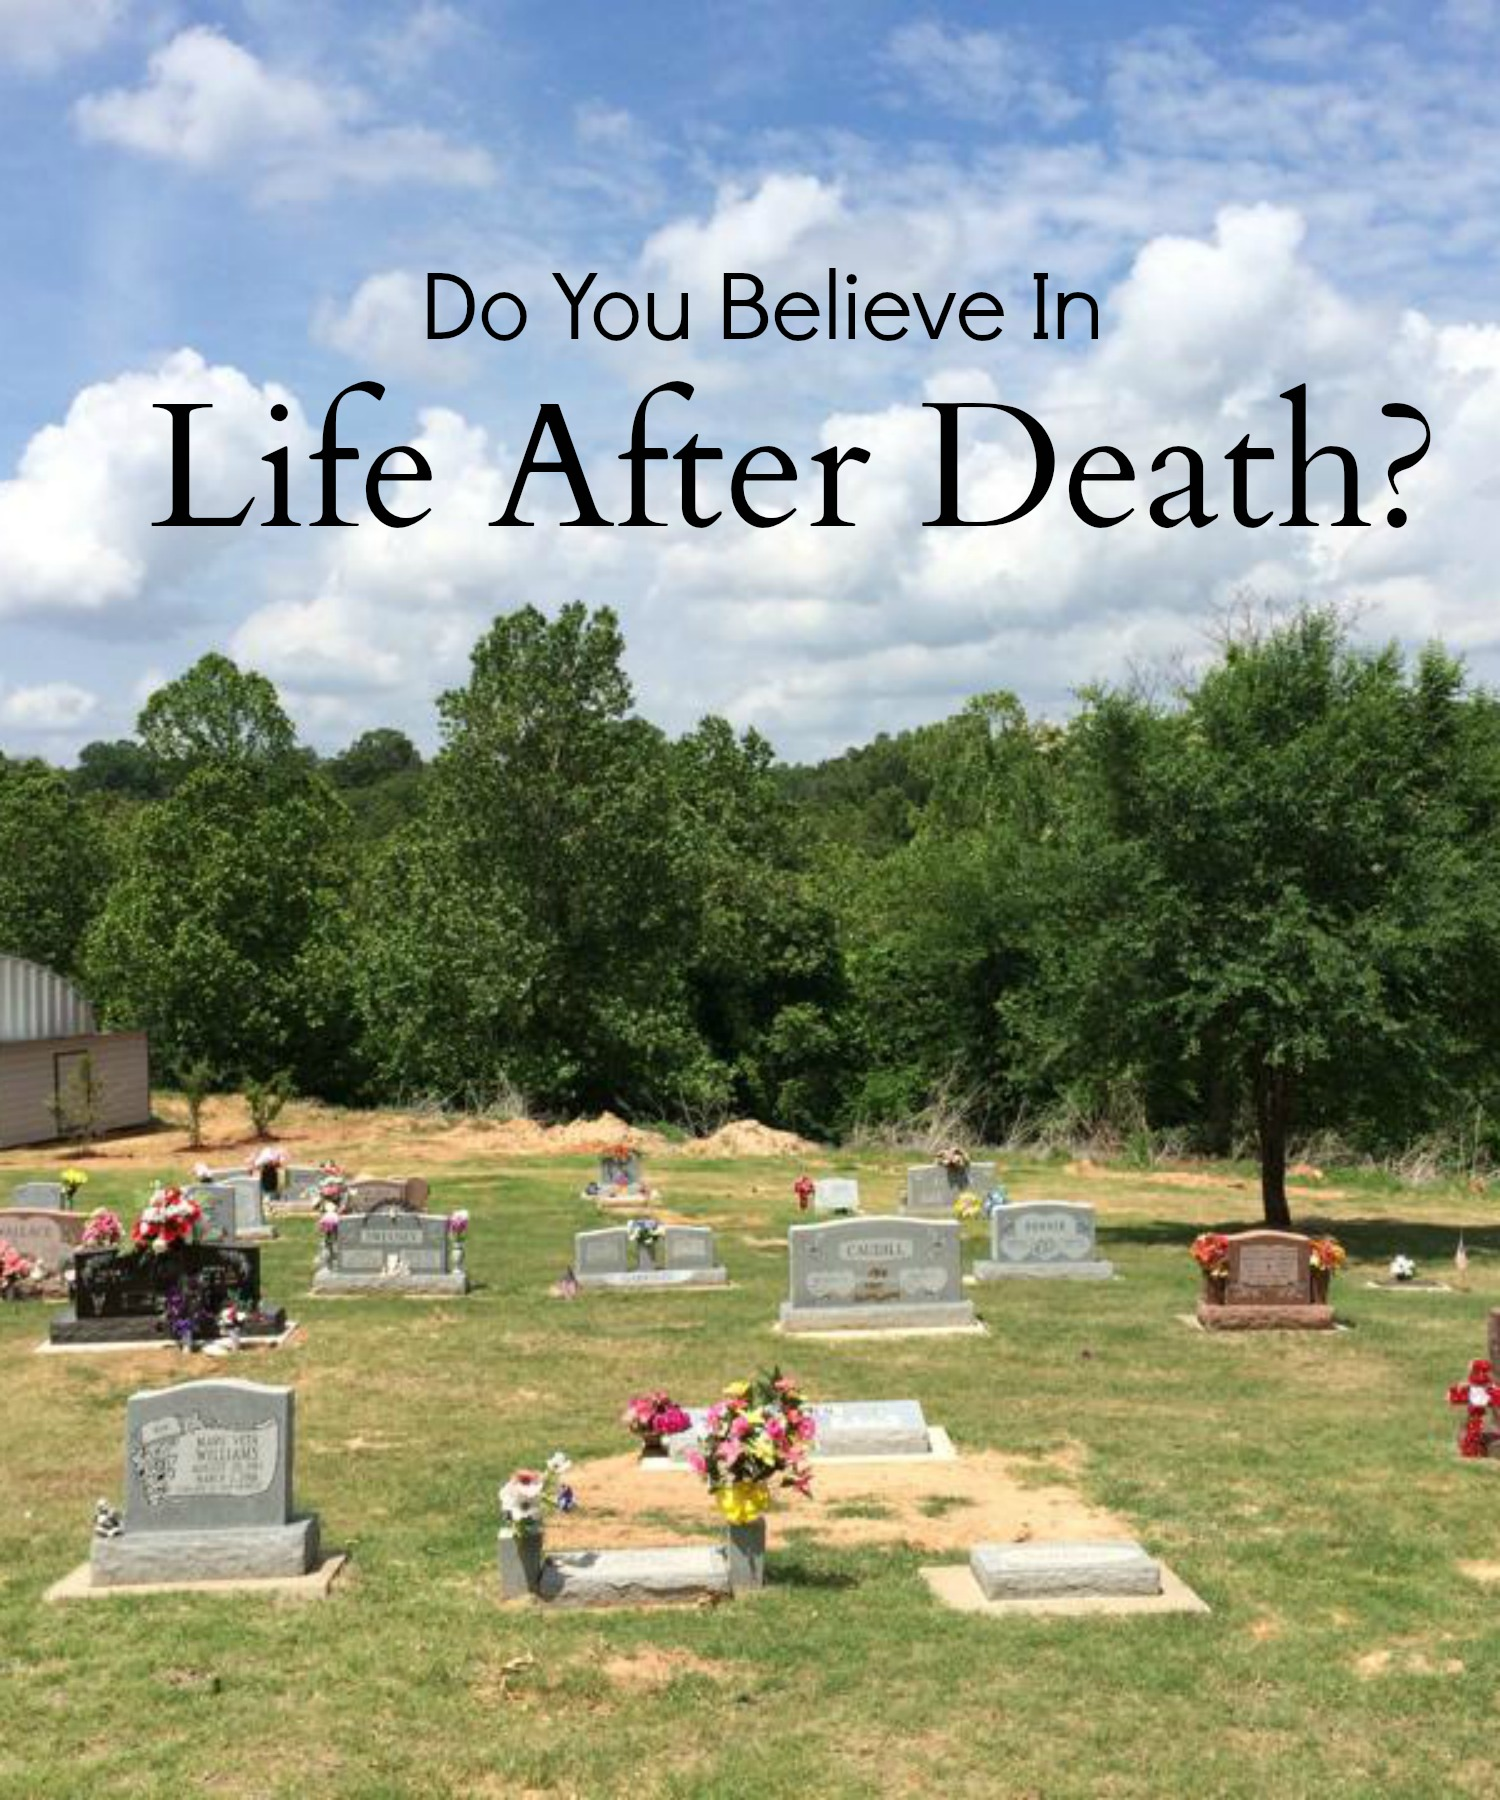 https://momluck.com/wp-content/uploads/2015/05/life-after-death-.jpg